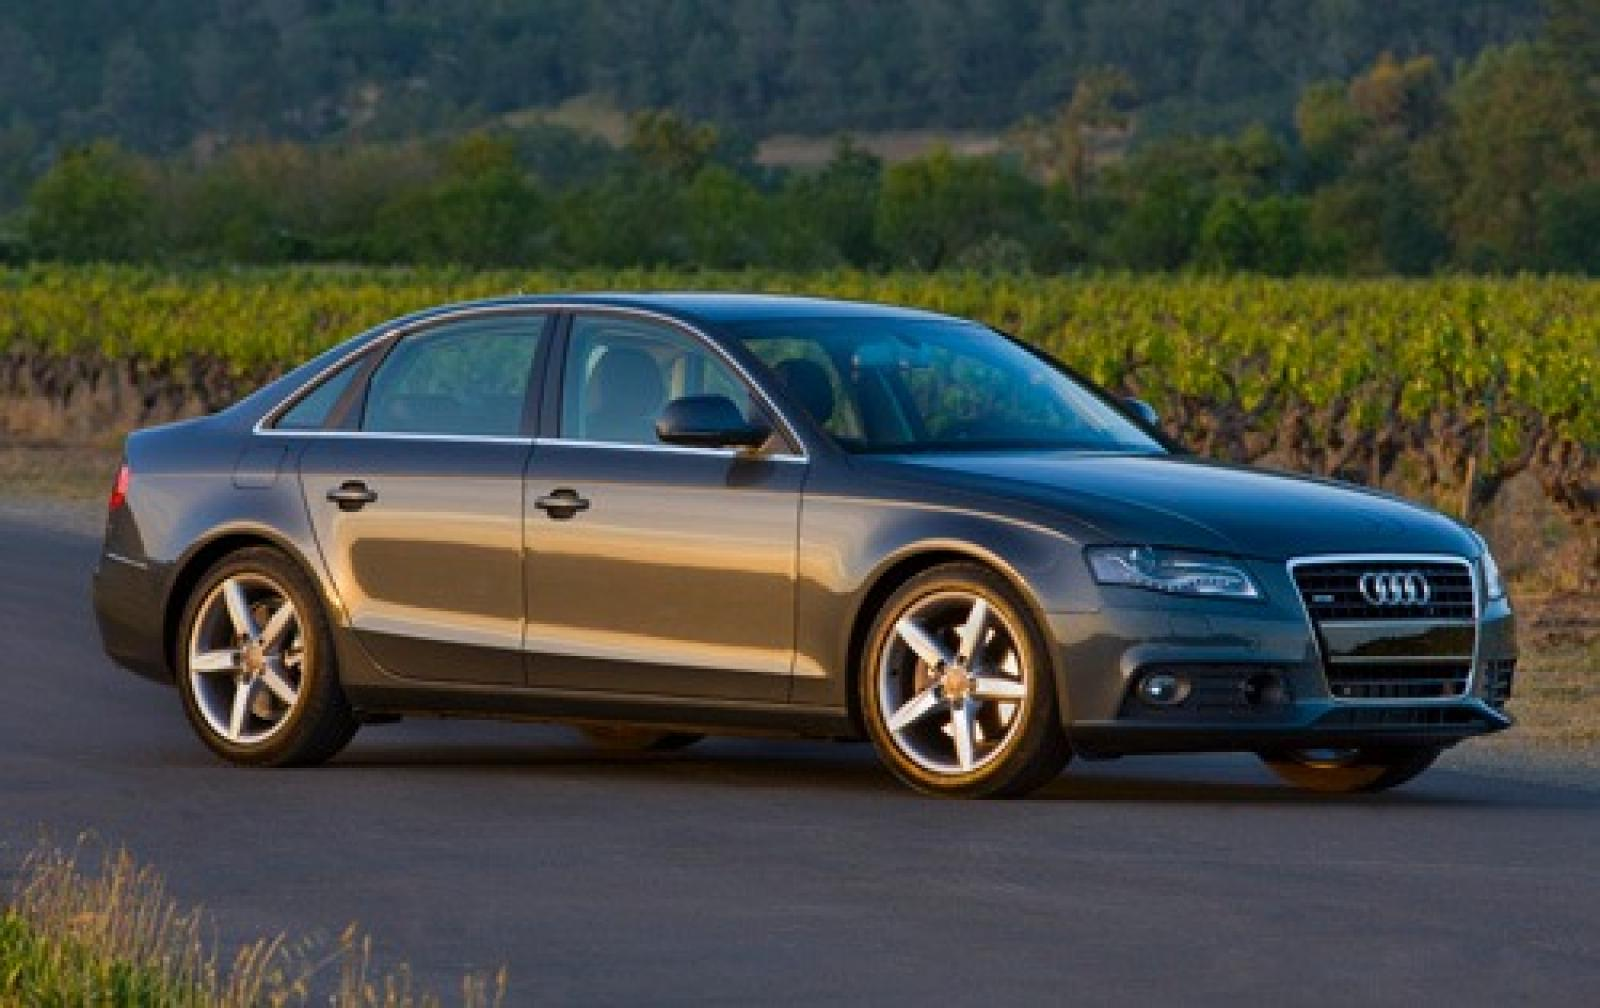 2010 audi a4 information and photos zombiedrive. Black Bedroom Furniture Sets. Home Design Ideas